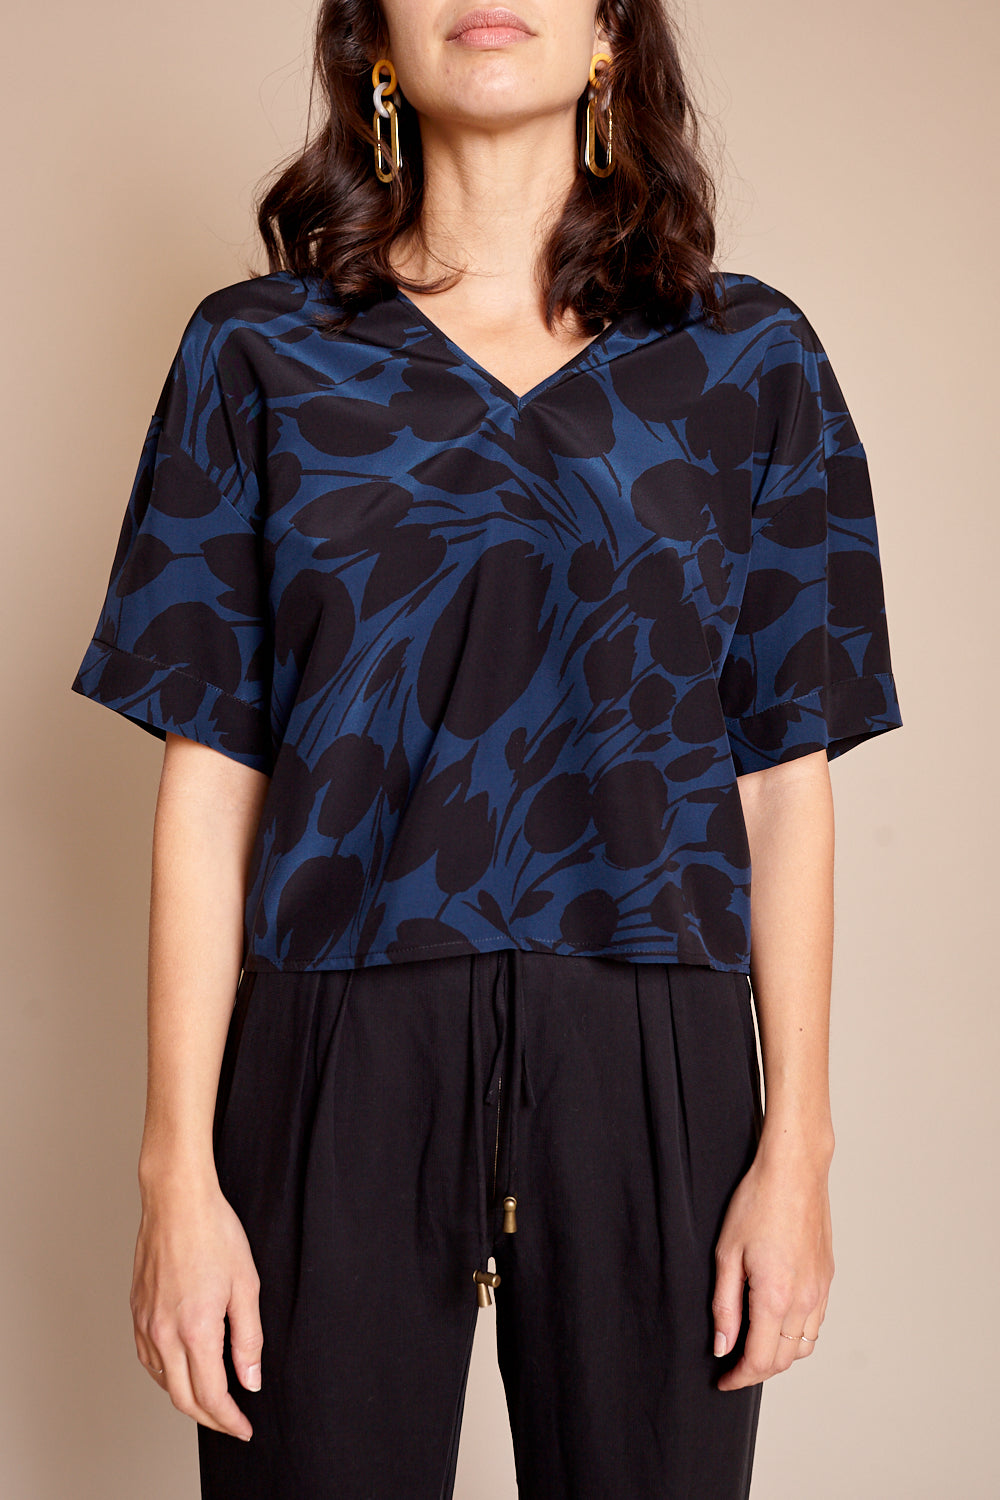 No.6 Diamond V Neck Top in Black and Navy Tulip - Vert & Vogue